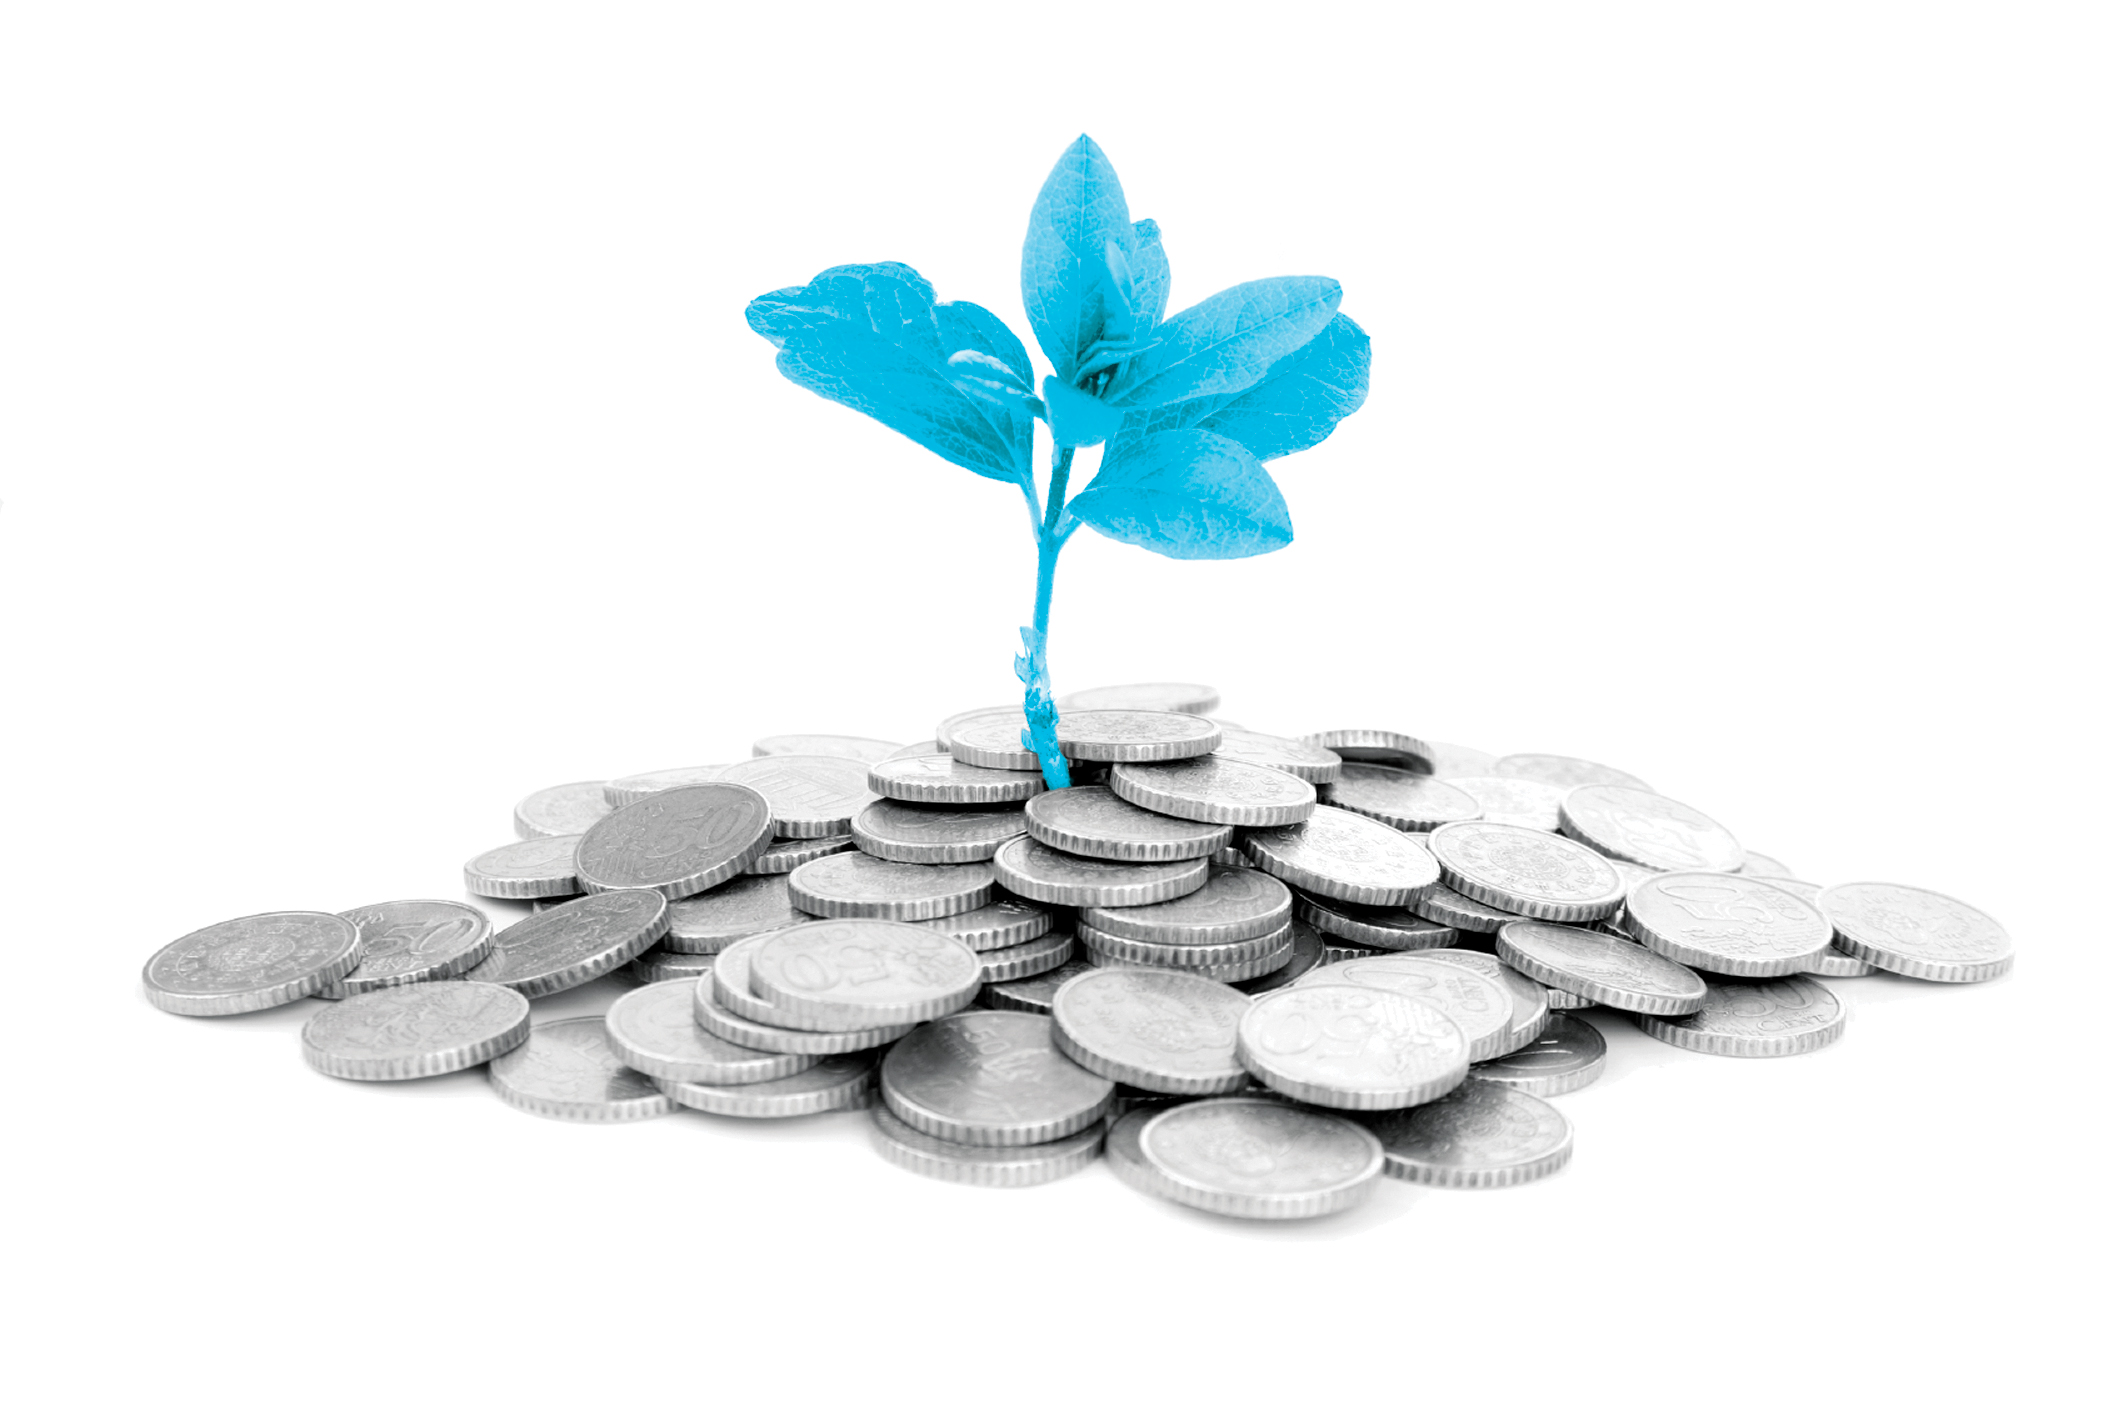 Coin and flowers image